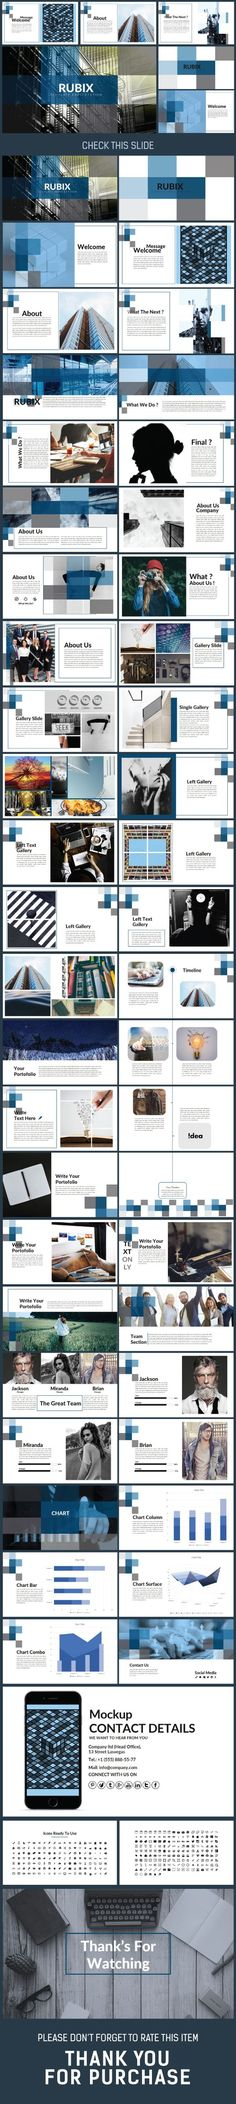 RUBIX - Presentation PowerPoint Template: